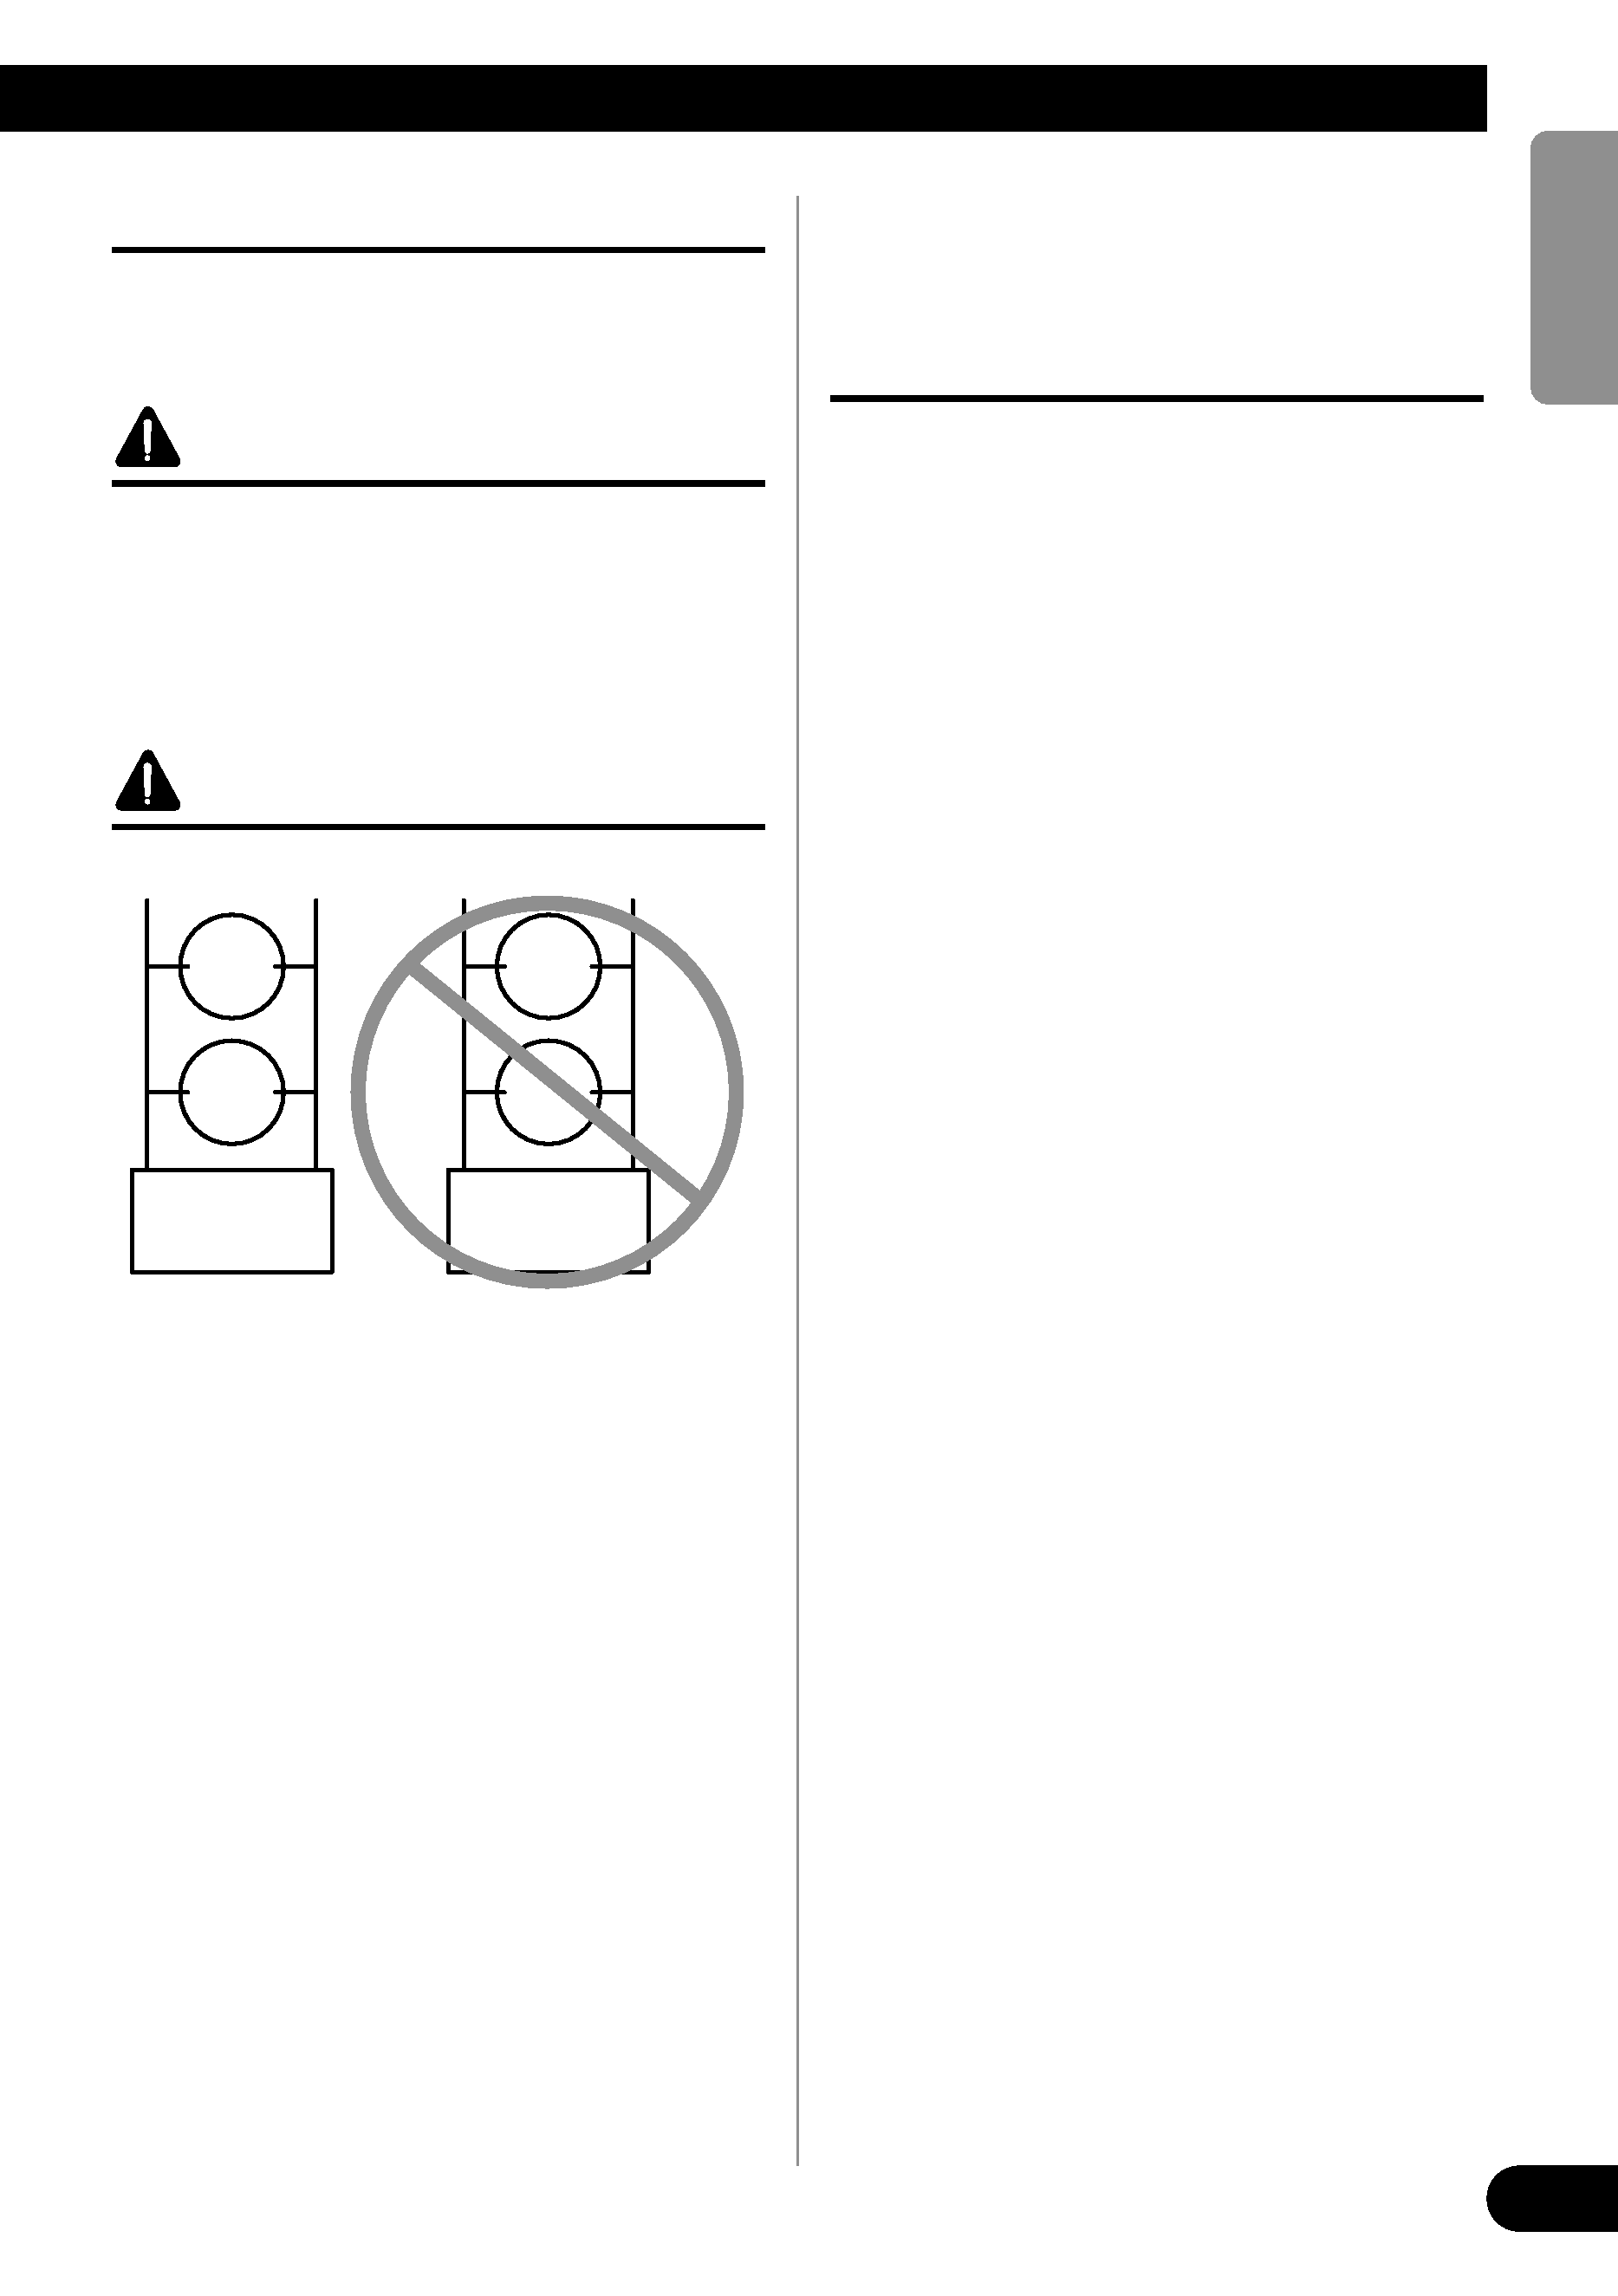 Speakers In Parallel With Bridged Center Manual Guide